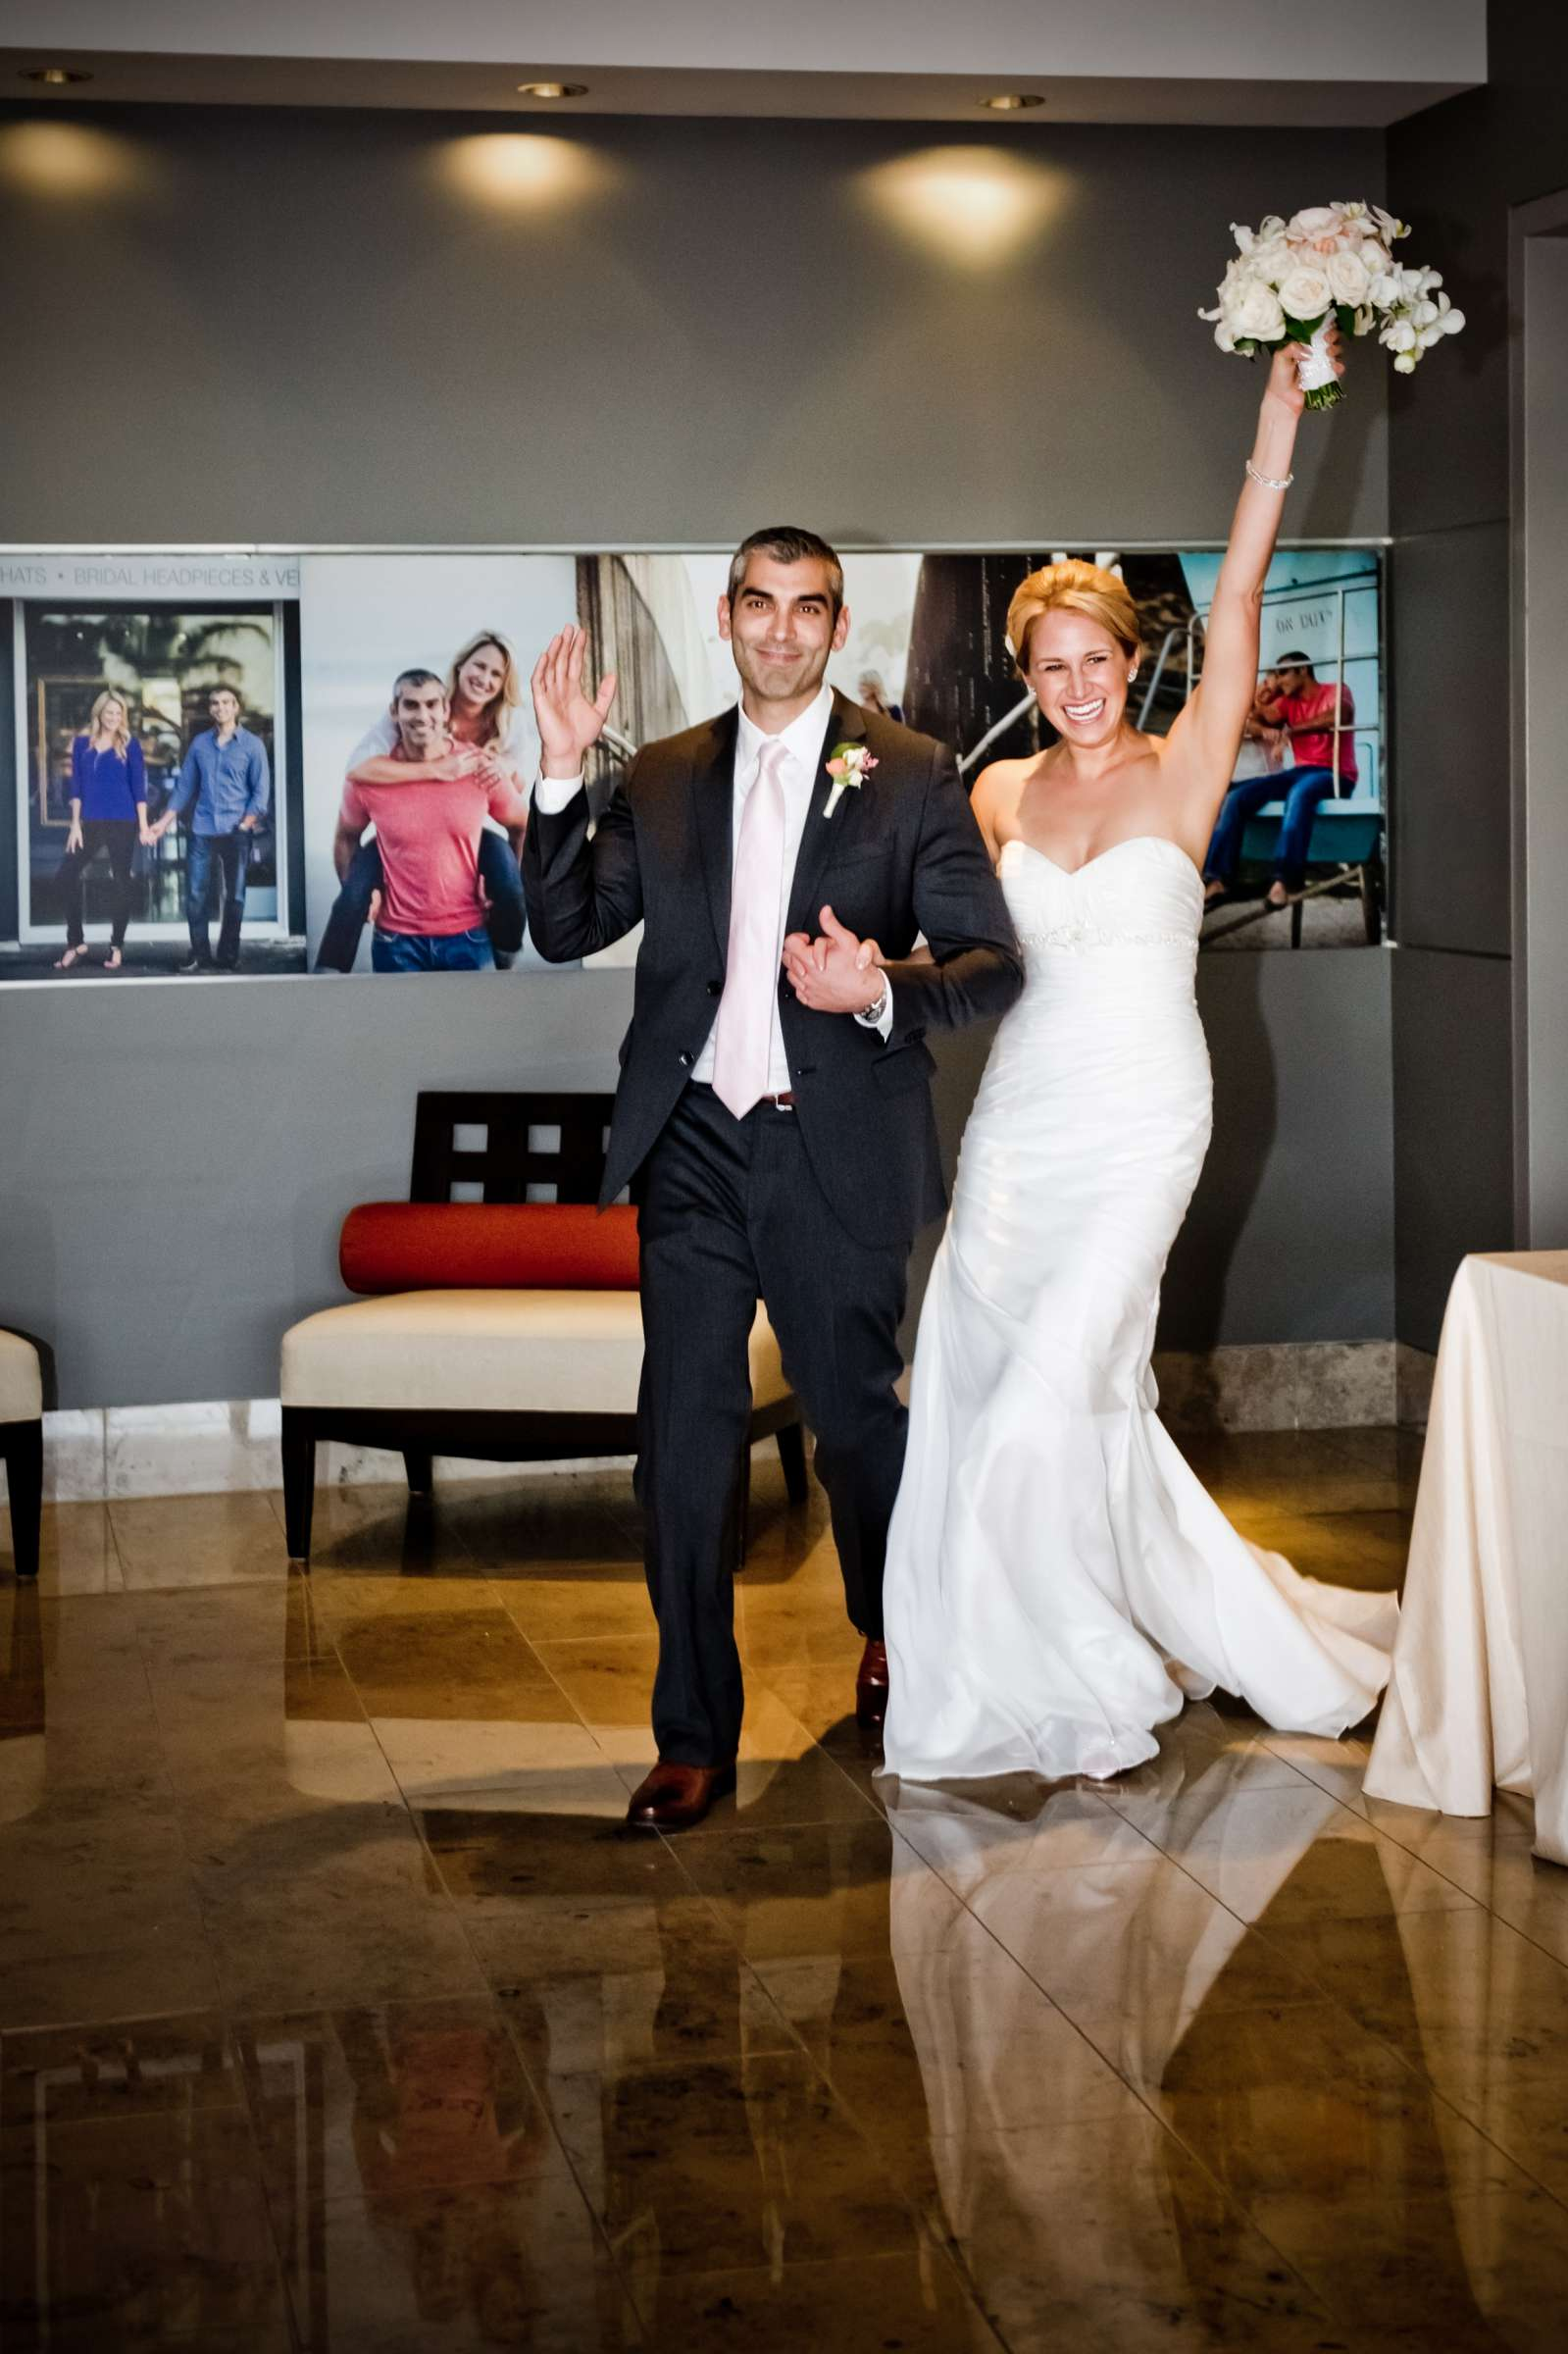 Reception at Ultimate Skybox Wedding, Chelsea and Frank Wedding Photo #50 by True Photography